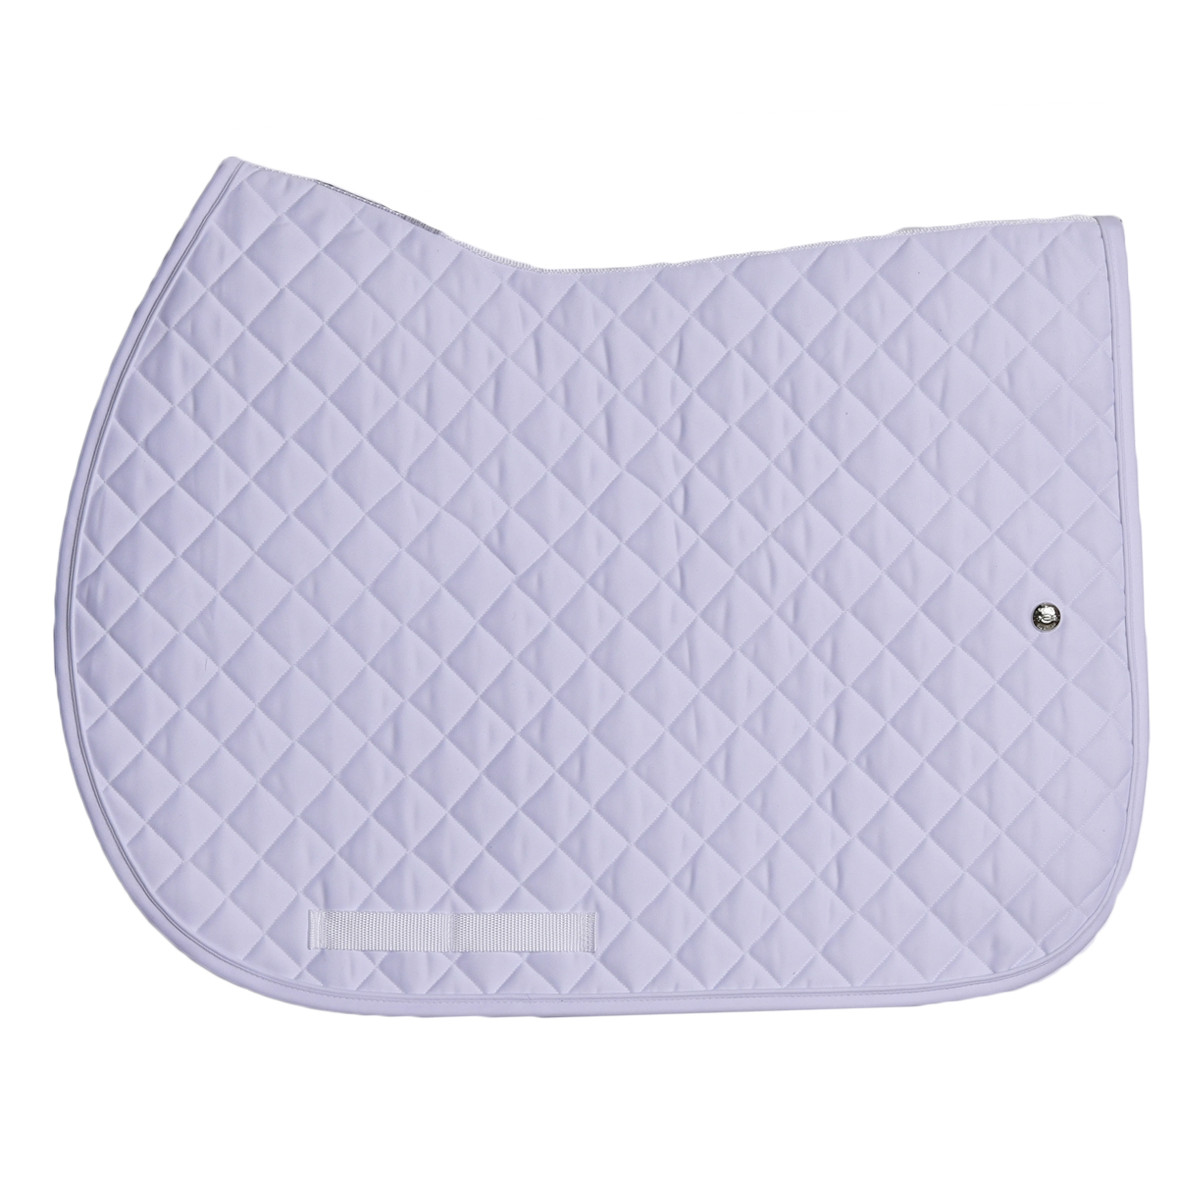 Ogilvy Jump Profile Pad - All White